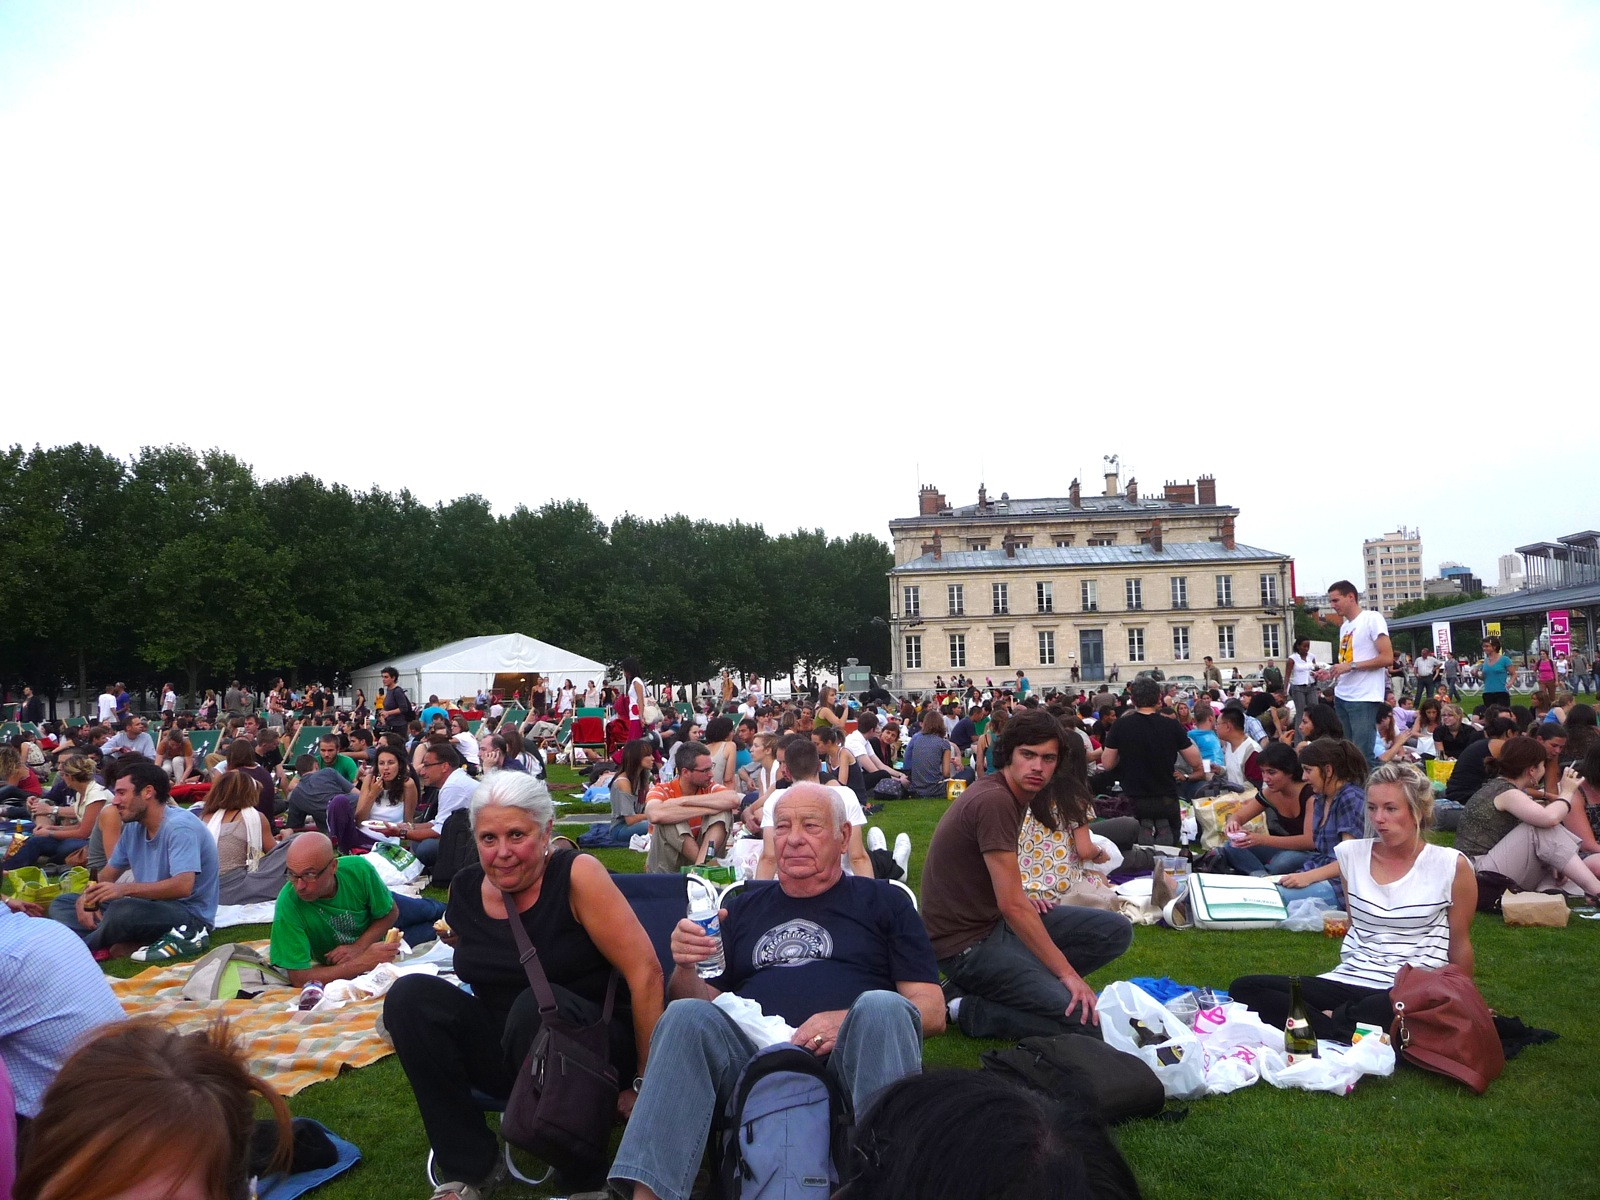 July Events in Paris: Paris Plage, Bastille Day, Festivals and more